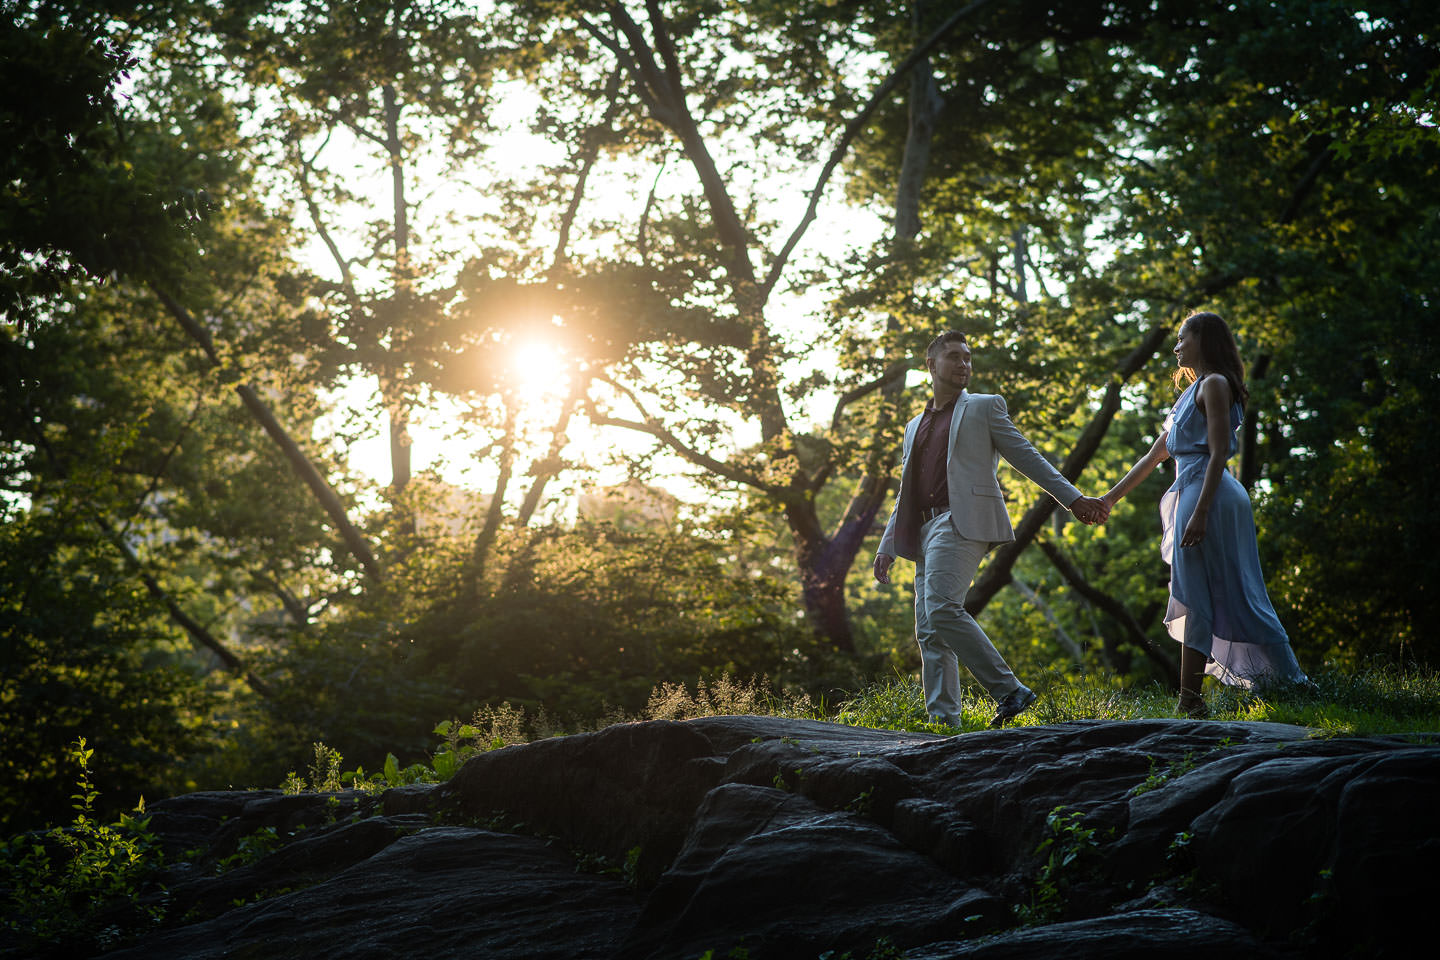 central park engagement session at sunset walking on rocks holding hands